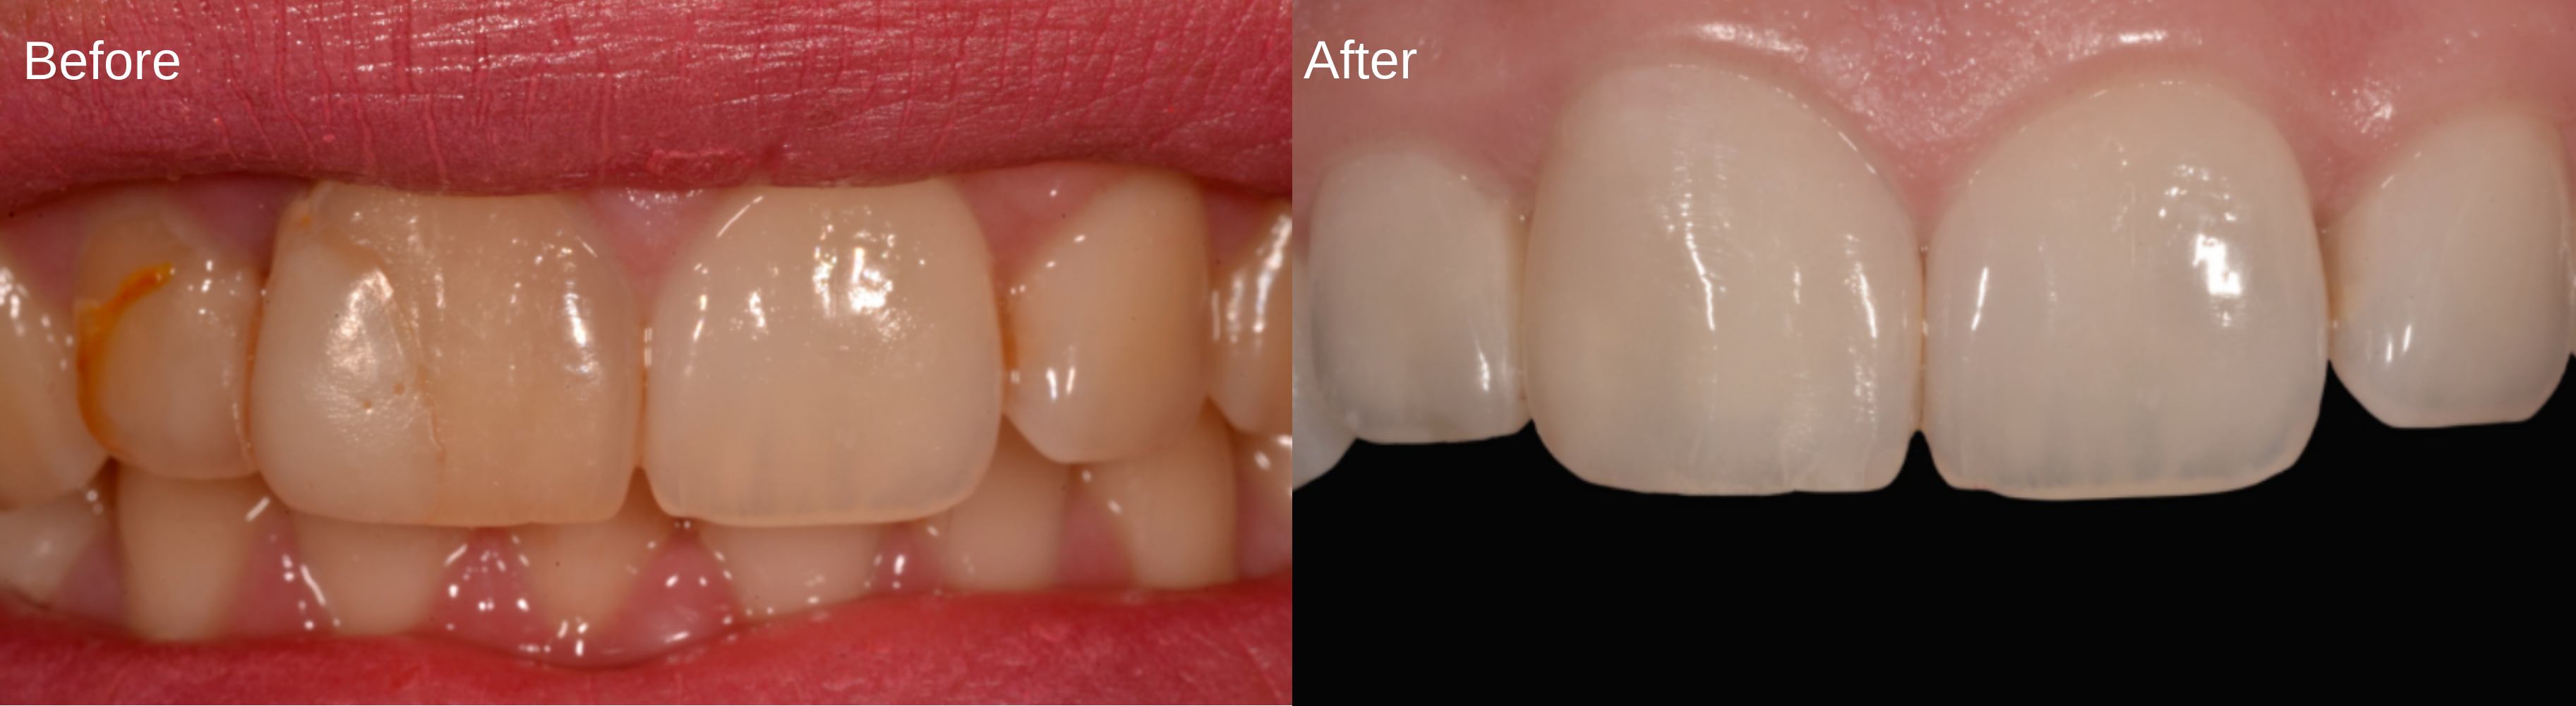 MONALDO - Before & After white dental beauty case study